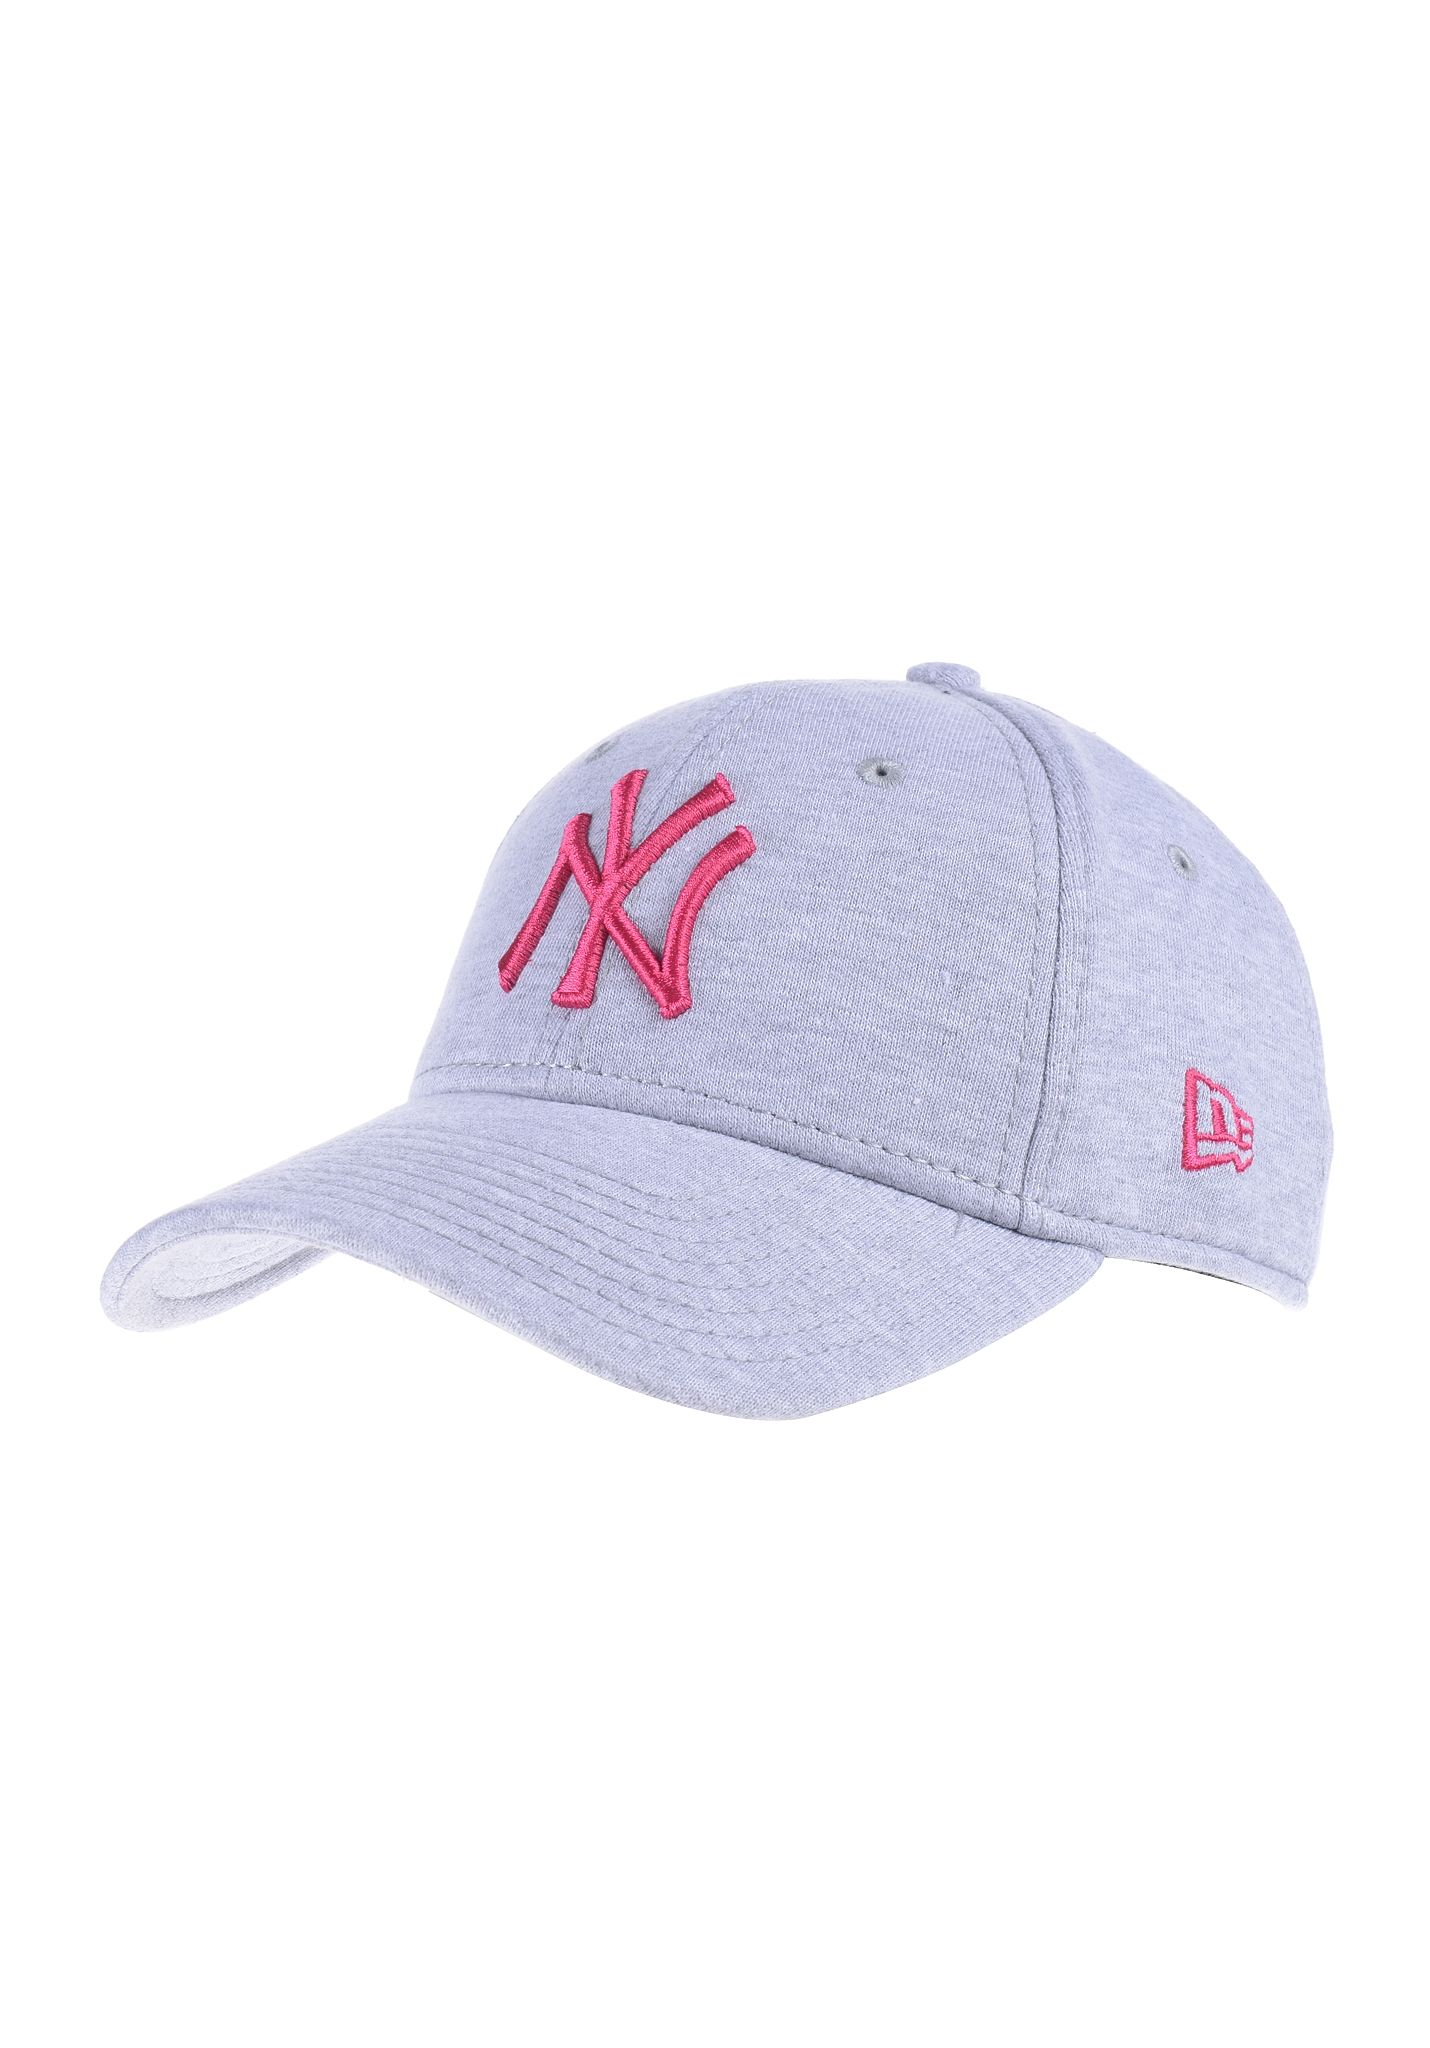 74f3e884162c01 NEW Era Jers Ess 940 New York Yankees - Casquette pour Femme - Rose -  Planet Sports